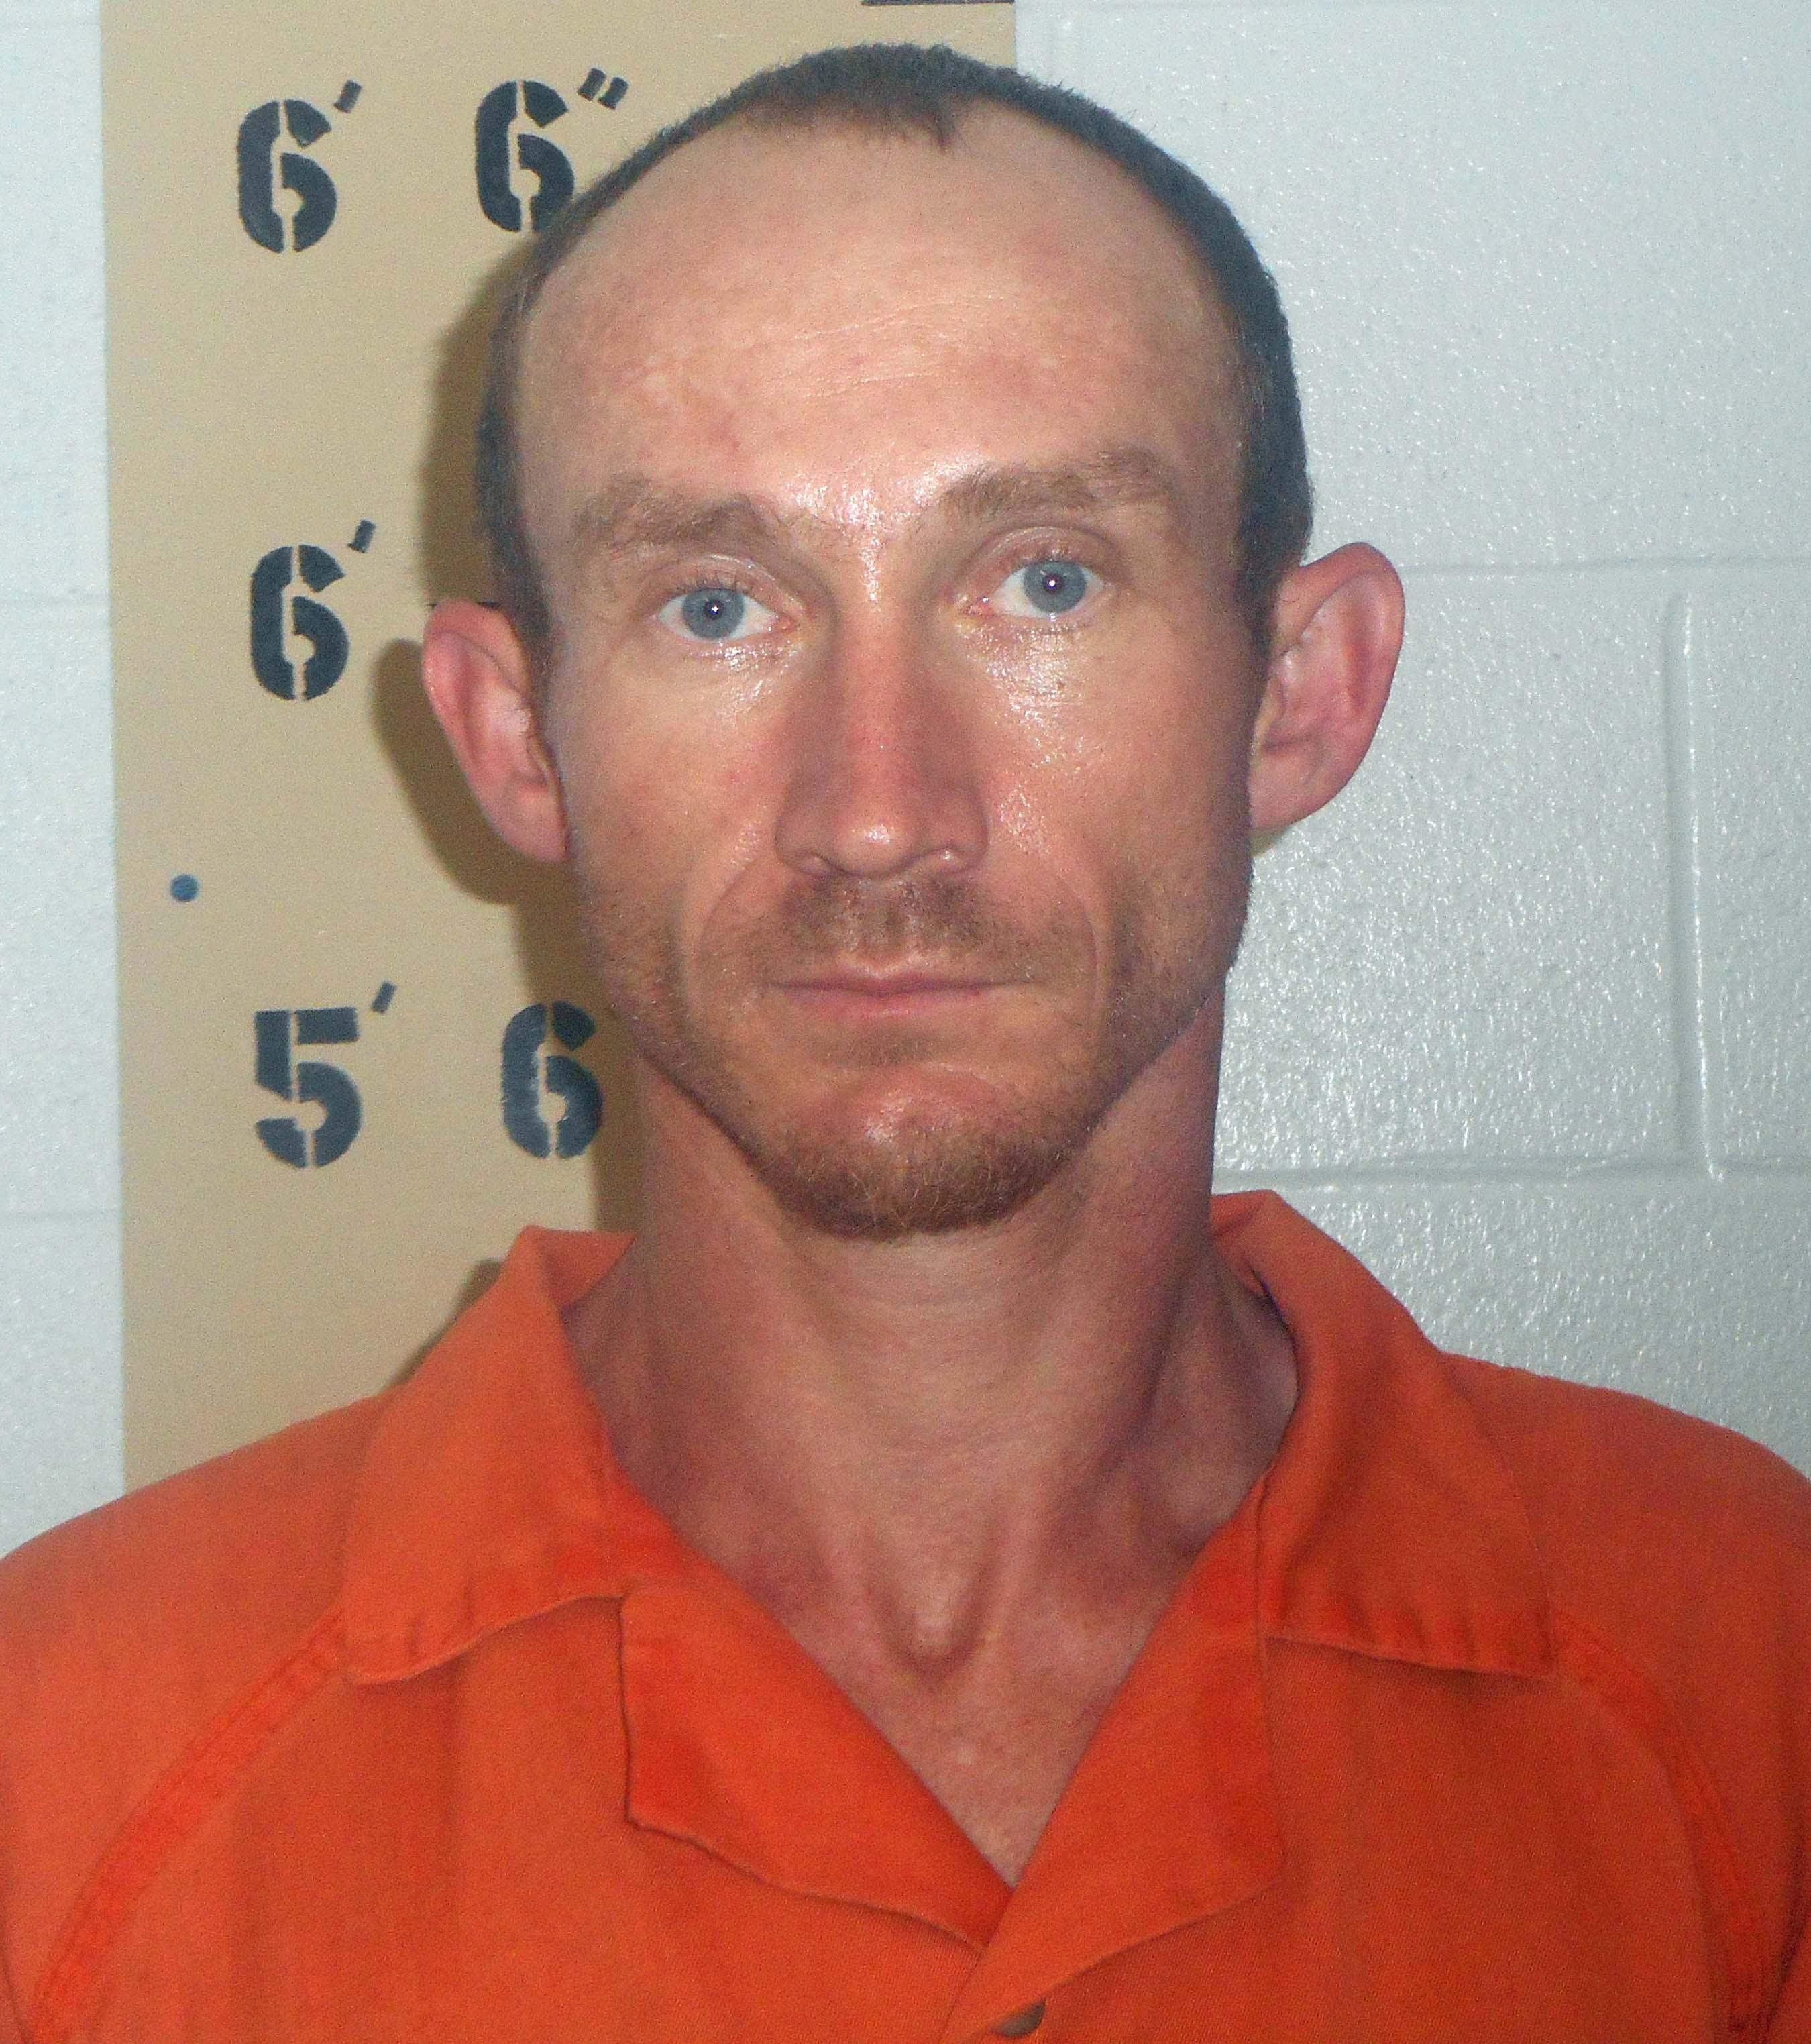 Keith Maynard. (Photo courtesy: Burnet County Sheriff's Office)